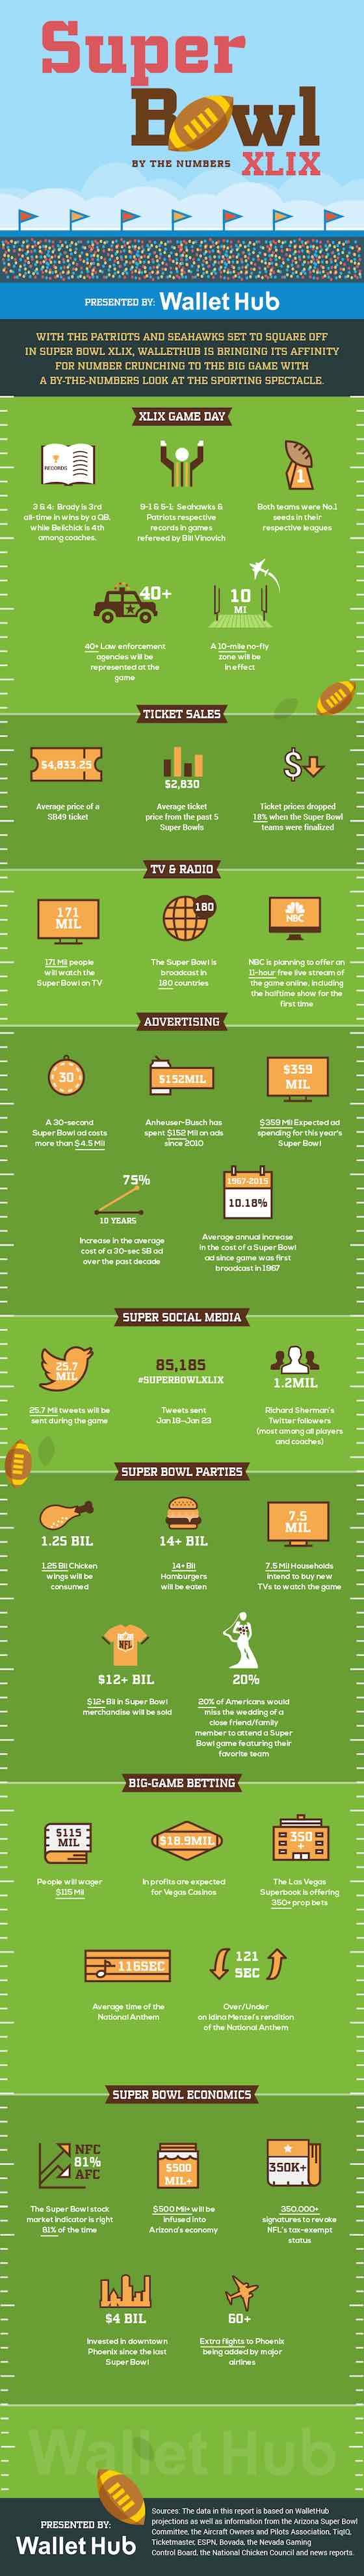 Infographic: Super Bowl XLIX by the Numbers